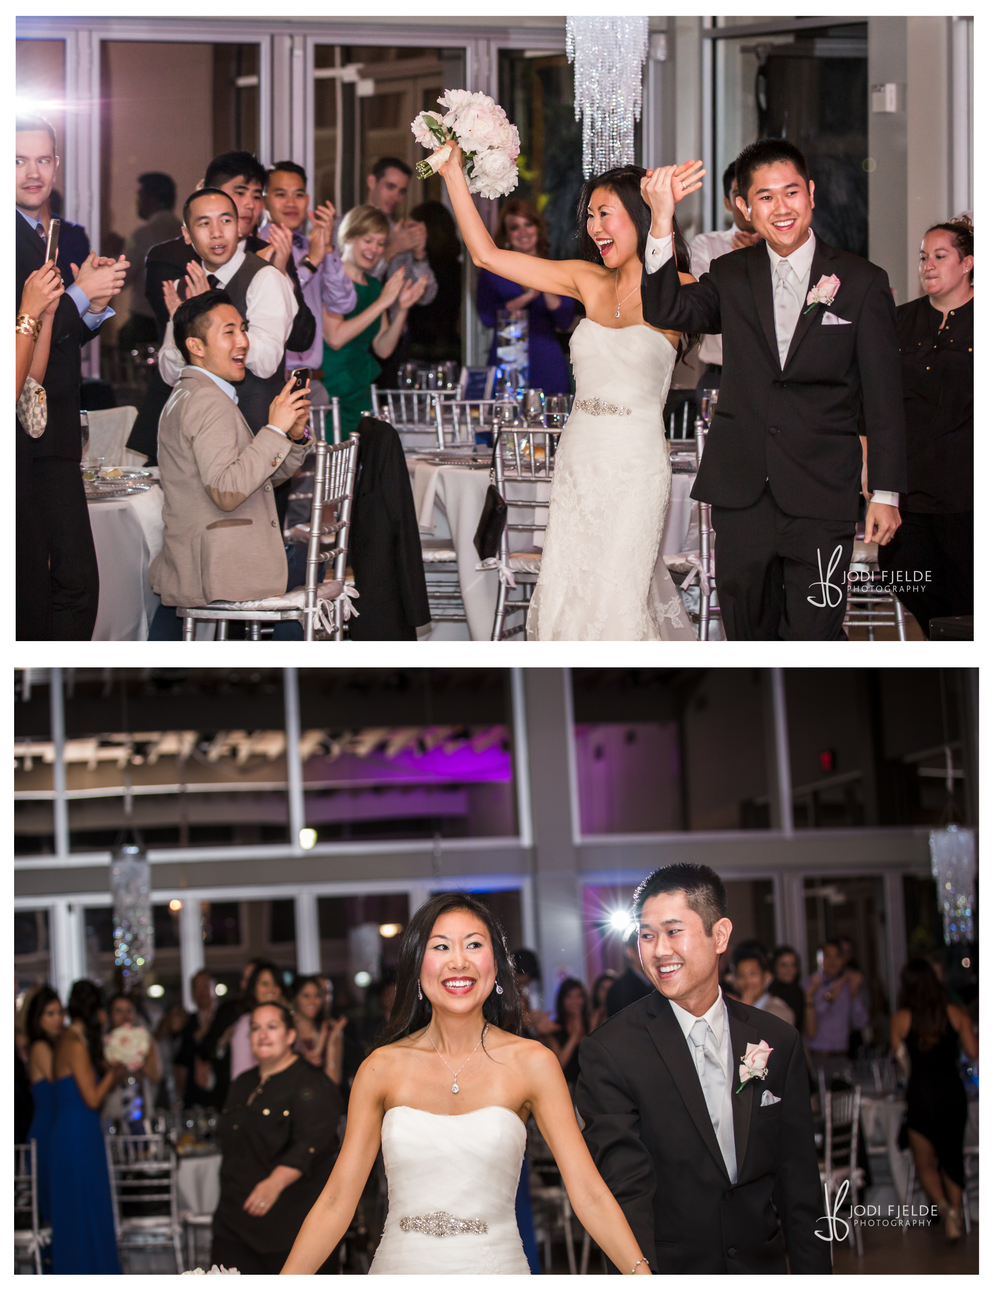 Lake_Pavilion_Wedding_West_Palm_Beach_Jodi_Fjelde_Photography_Betty_Alex_Sociaety_Of_Four _Arts_22.jpg